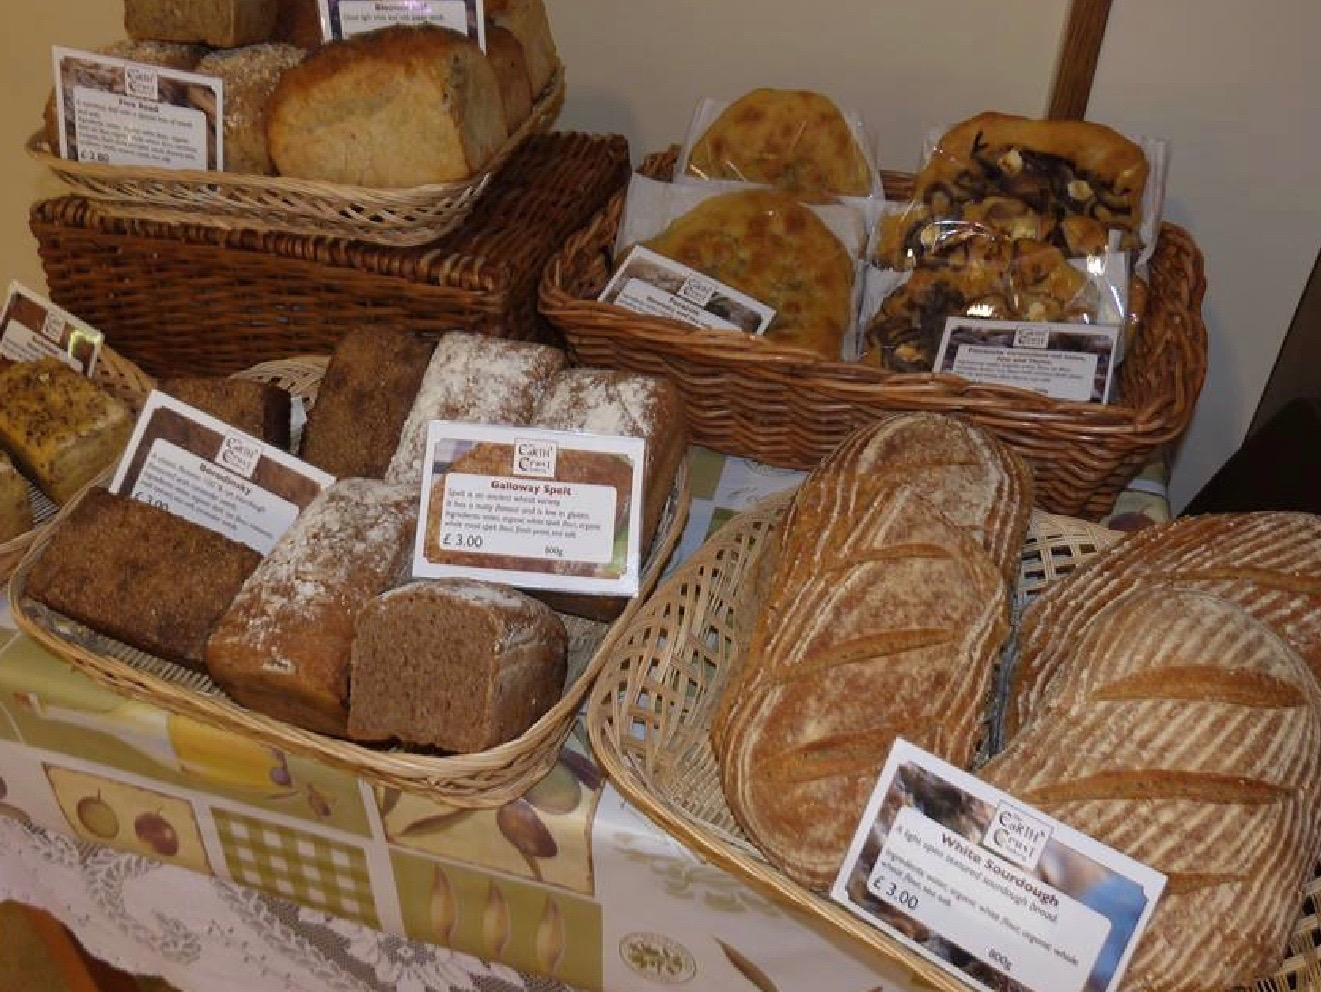 Baskets full of breads, rolls and cakes including gluten free items